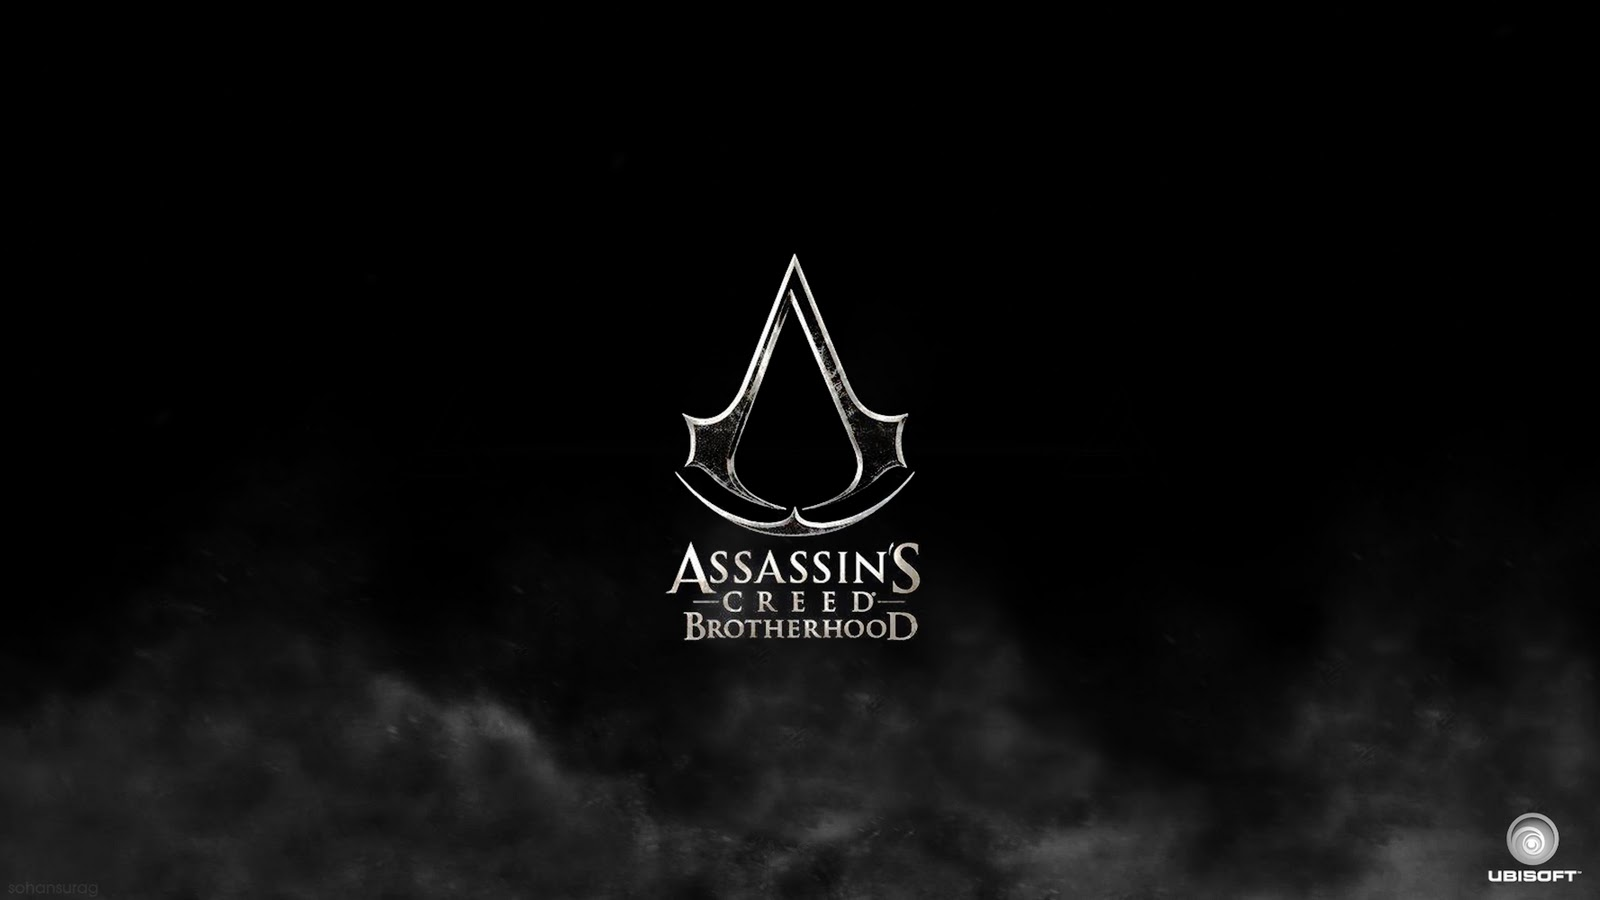 Assassins Creed Logo AvpHDorg Server 3 1600x900